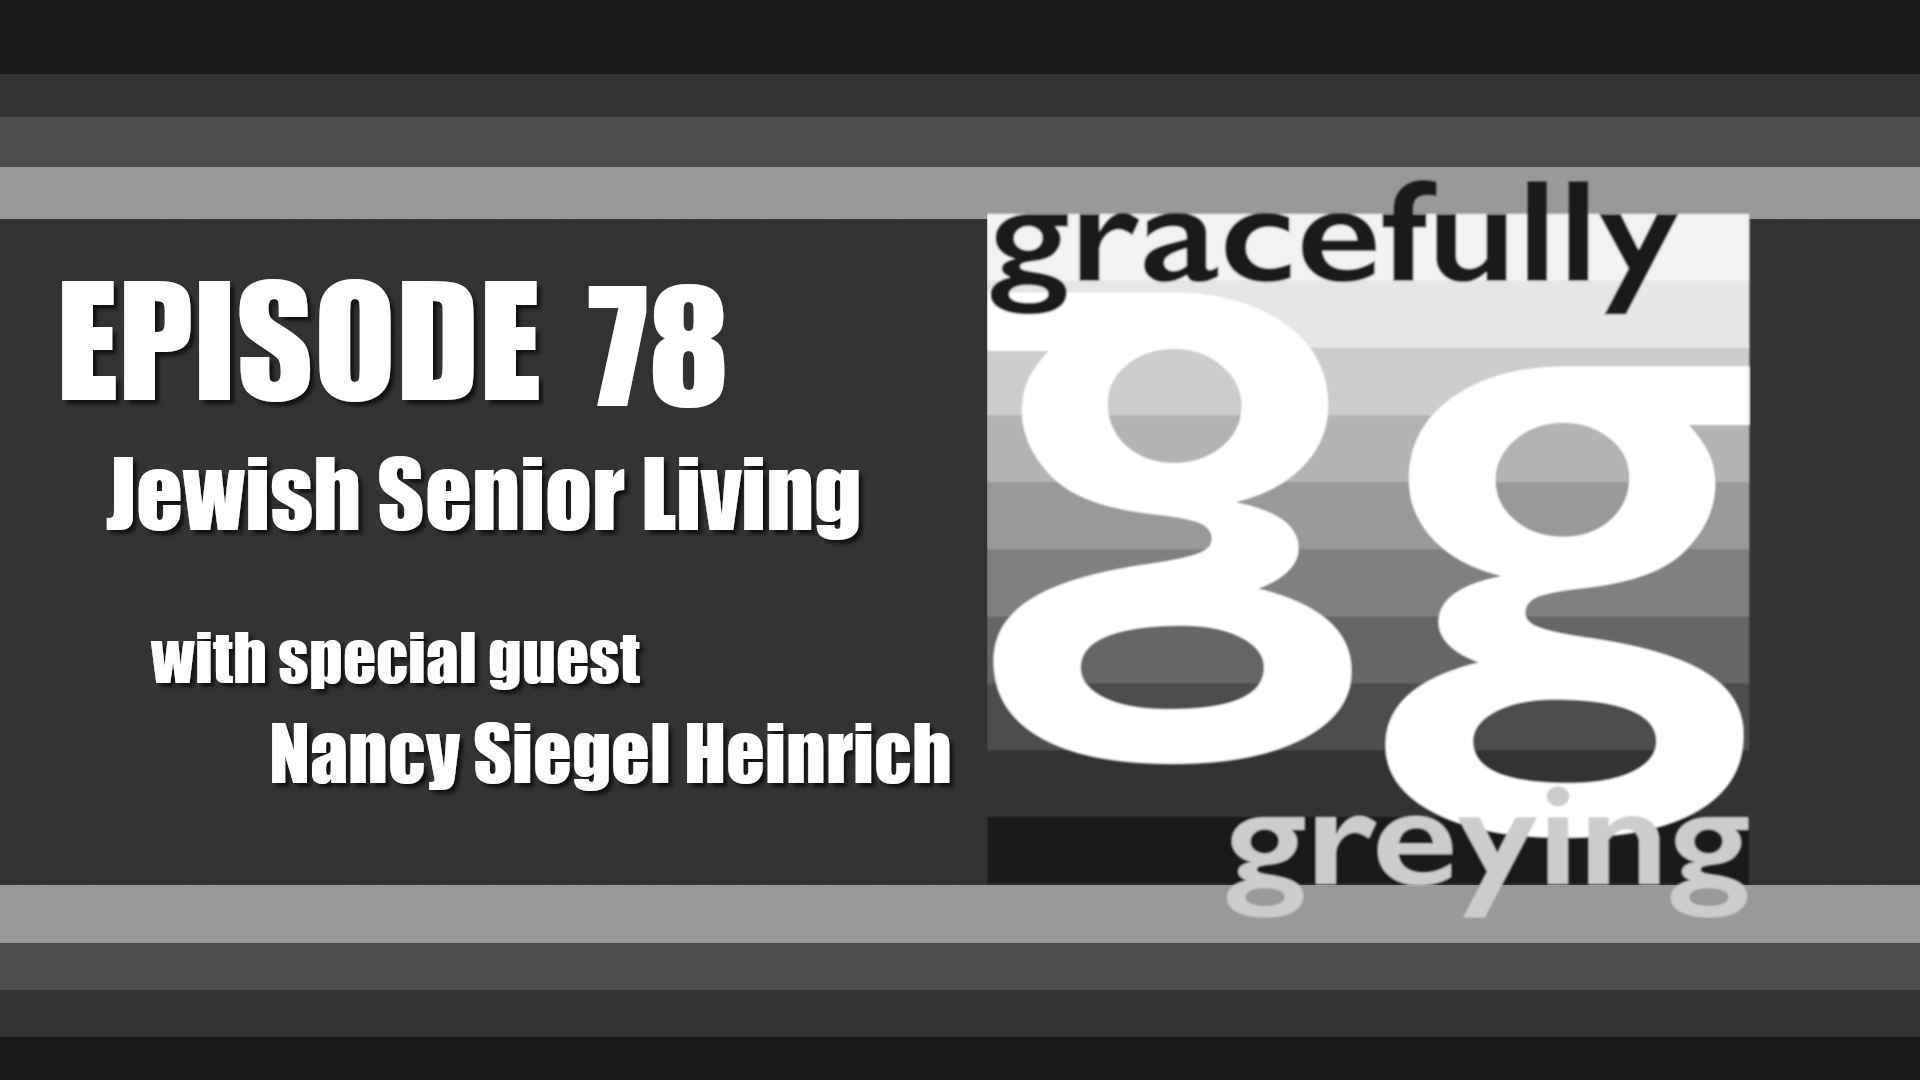 Gracefully Greying - Episode 78